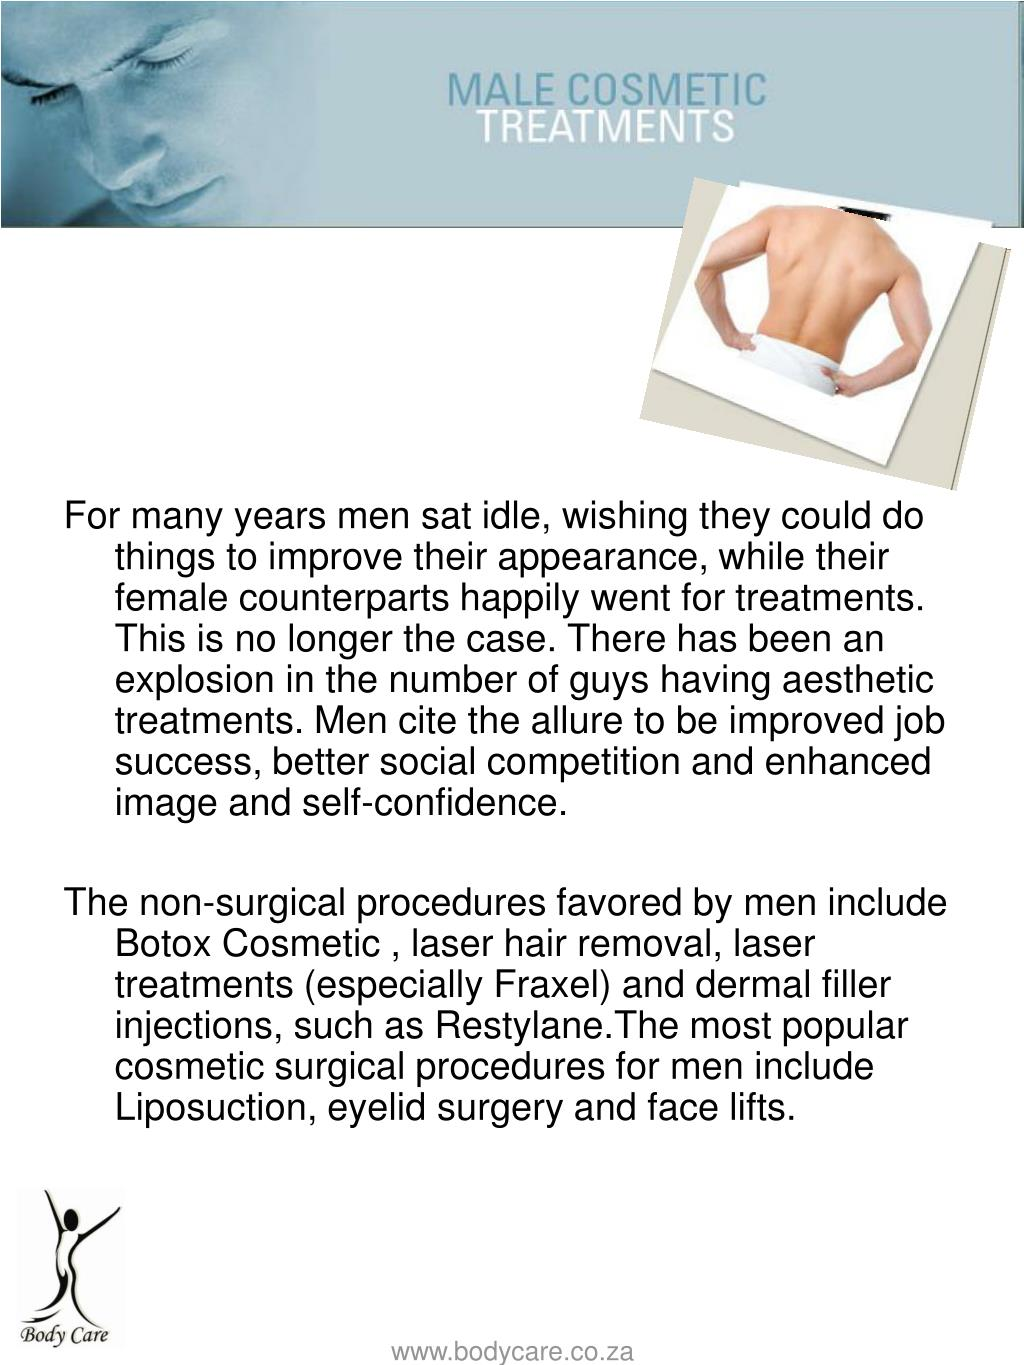 For many years men sat idle, wishing they could do things to improve their appearance, while their female counterparts happily went for treatments. This is no longer the case. There has been an explosion in the number of guys having aesthetic treatments. Men cite the allure to be improved job success, better social competition and enhanced image and self-confidence.